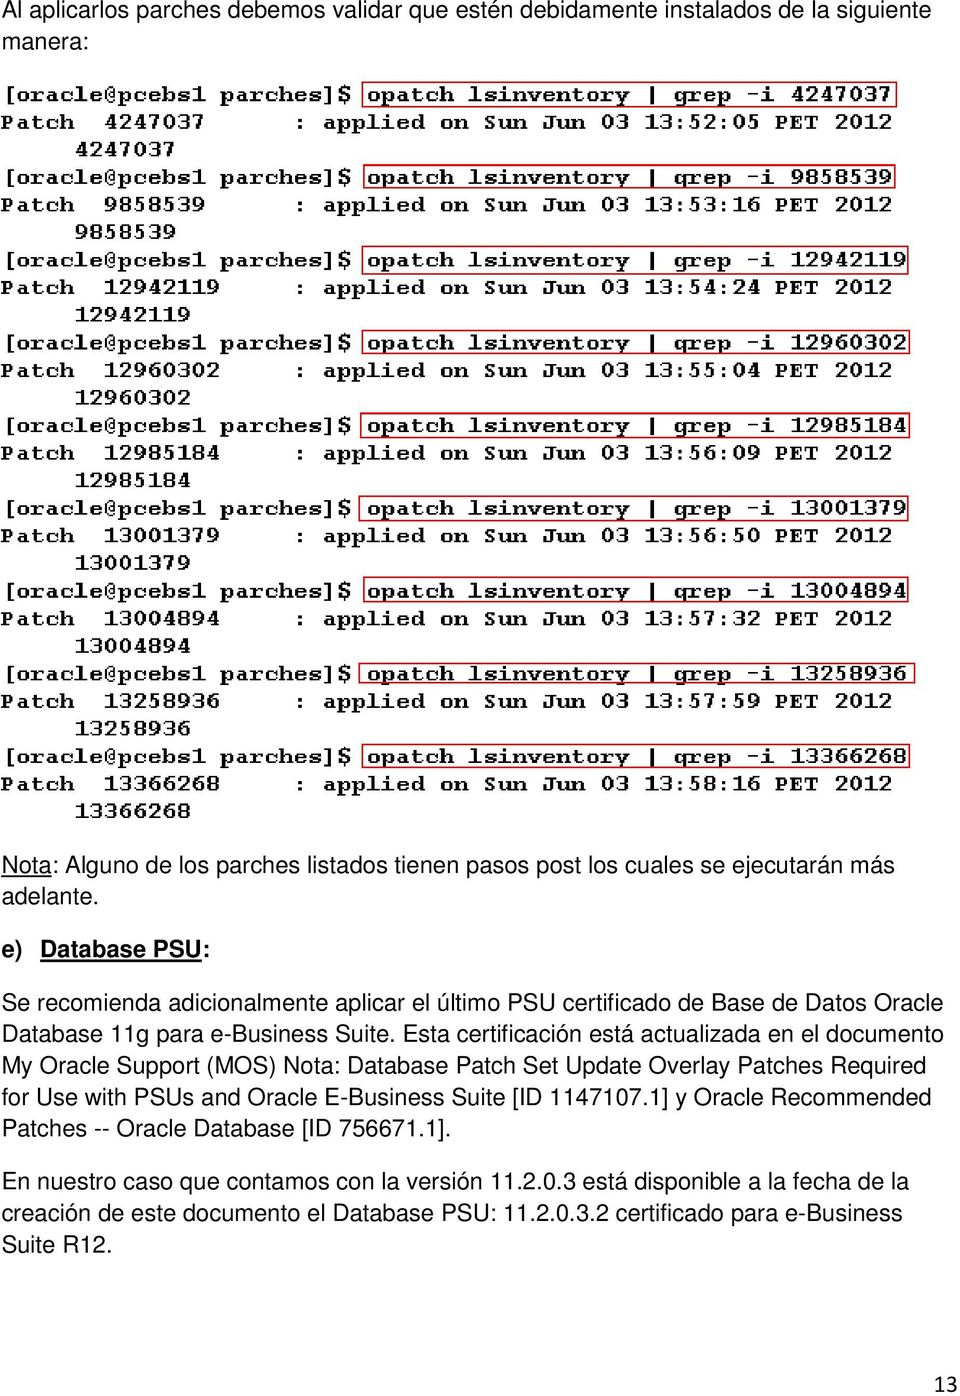 Esta certificación está actualizada en el documento My Oracle Support (MOS) Nota: Database Patch Set Update Overlay Patches Required for Use with PSUs and Oracle E-Business Suite [ID 1147107.